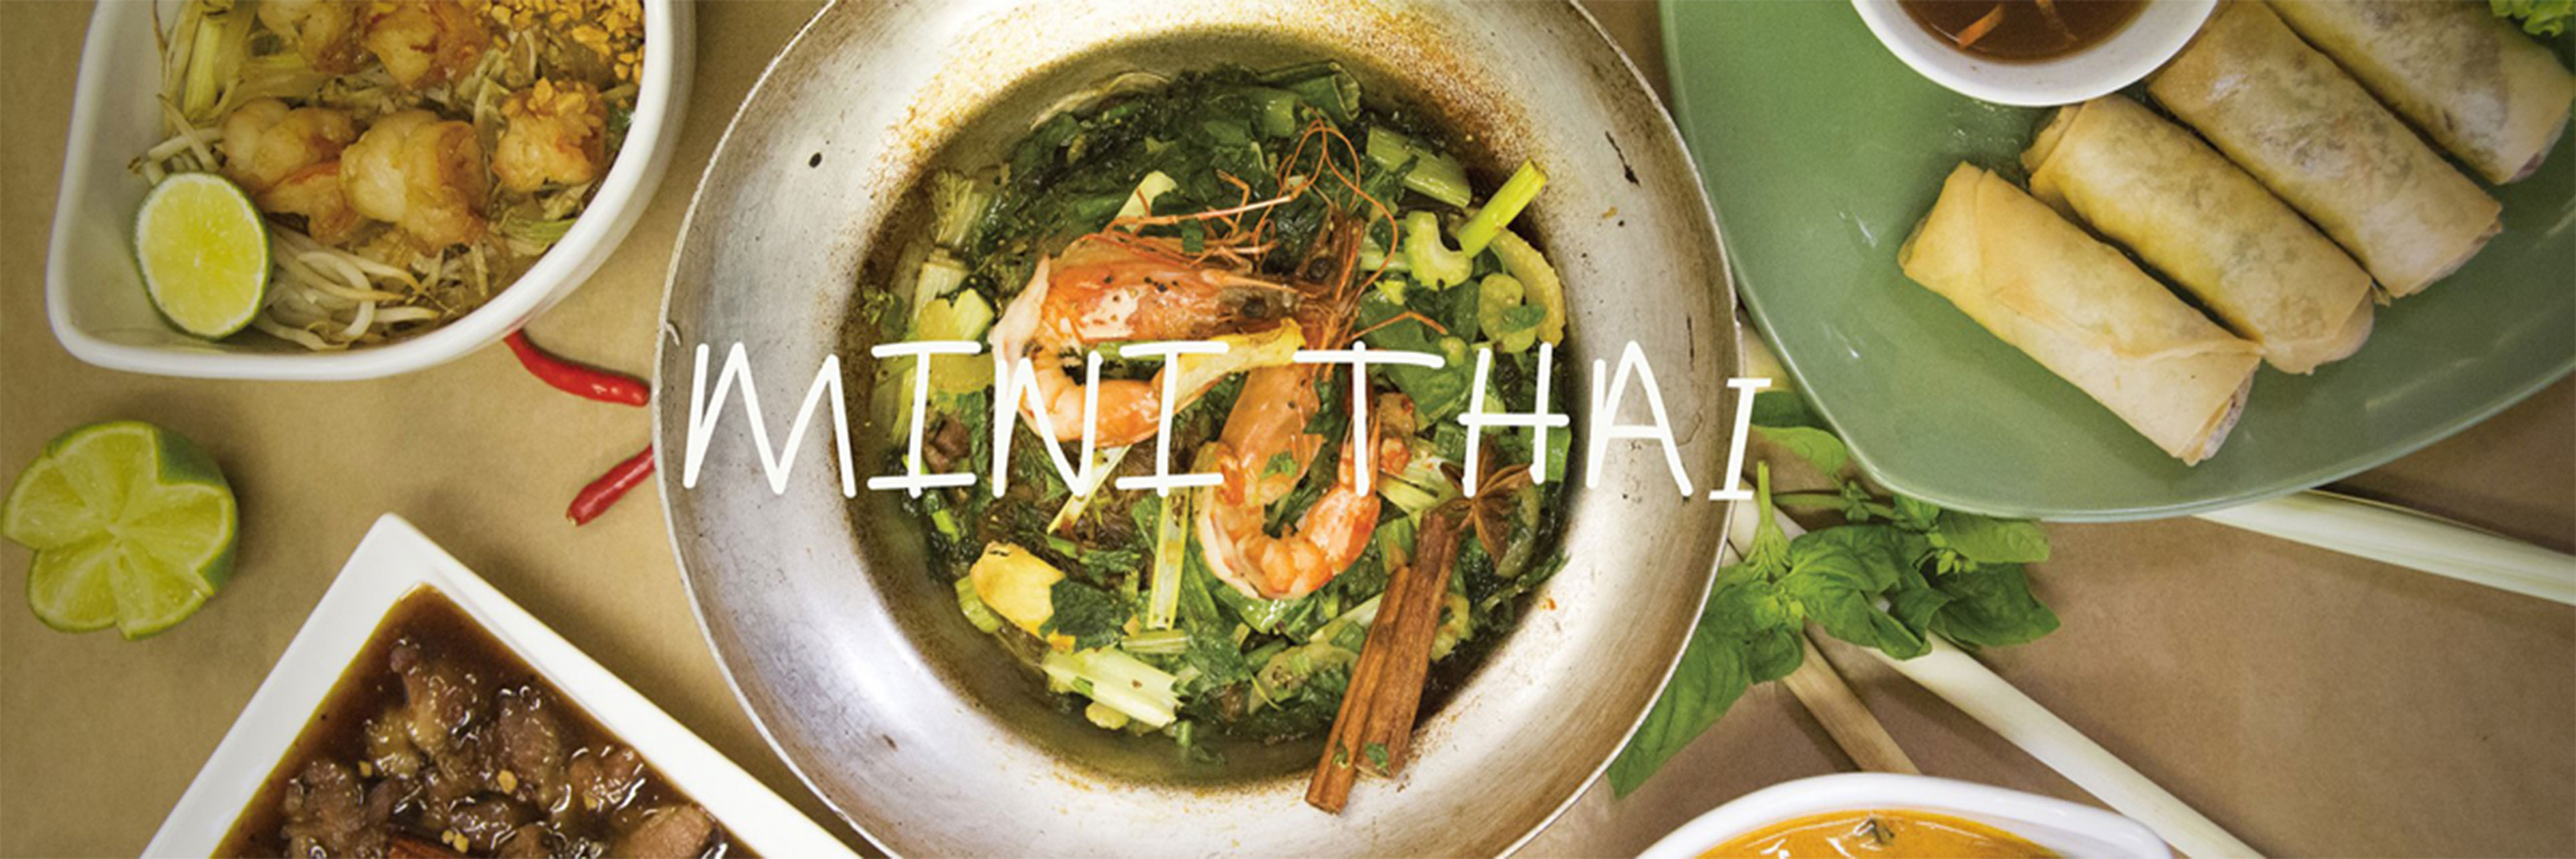 restaurant mini-thai saint jeannet cuisine traditionnel Thailandaise Fait maison